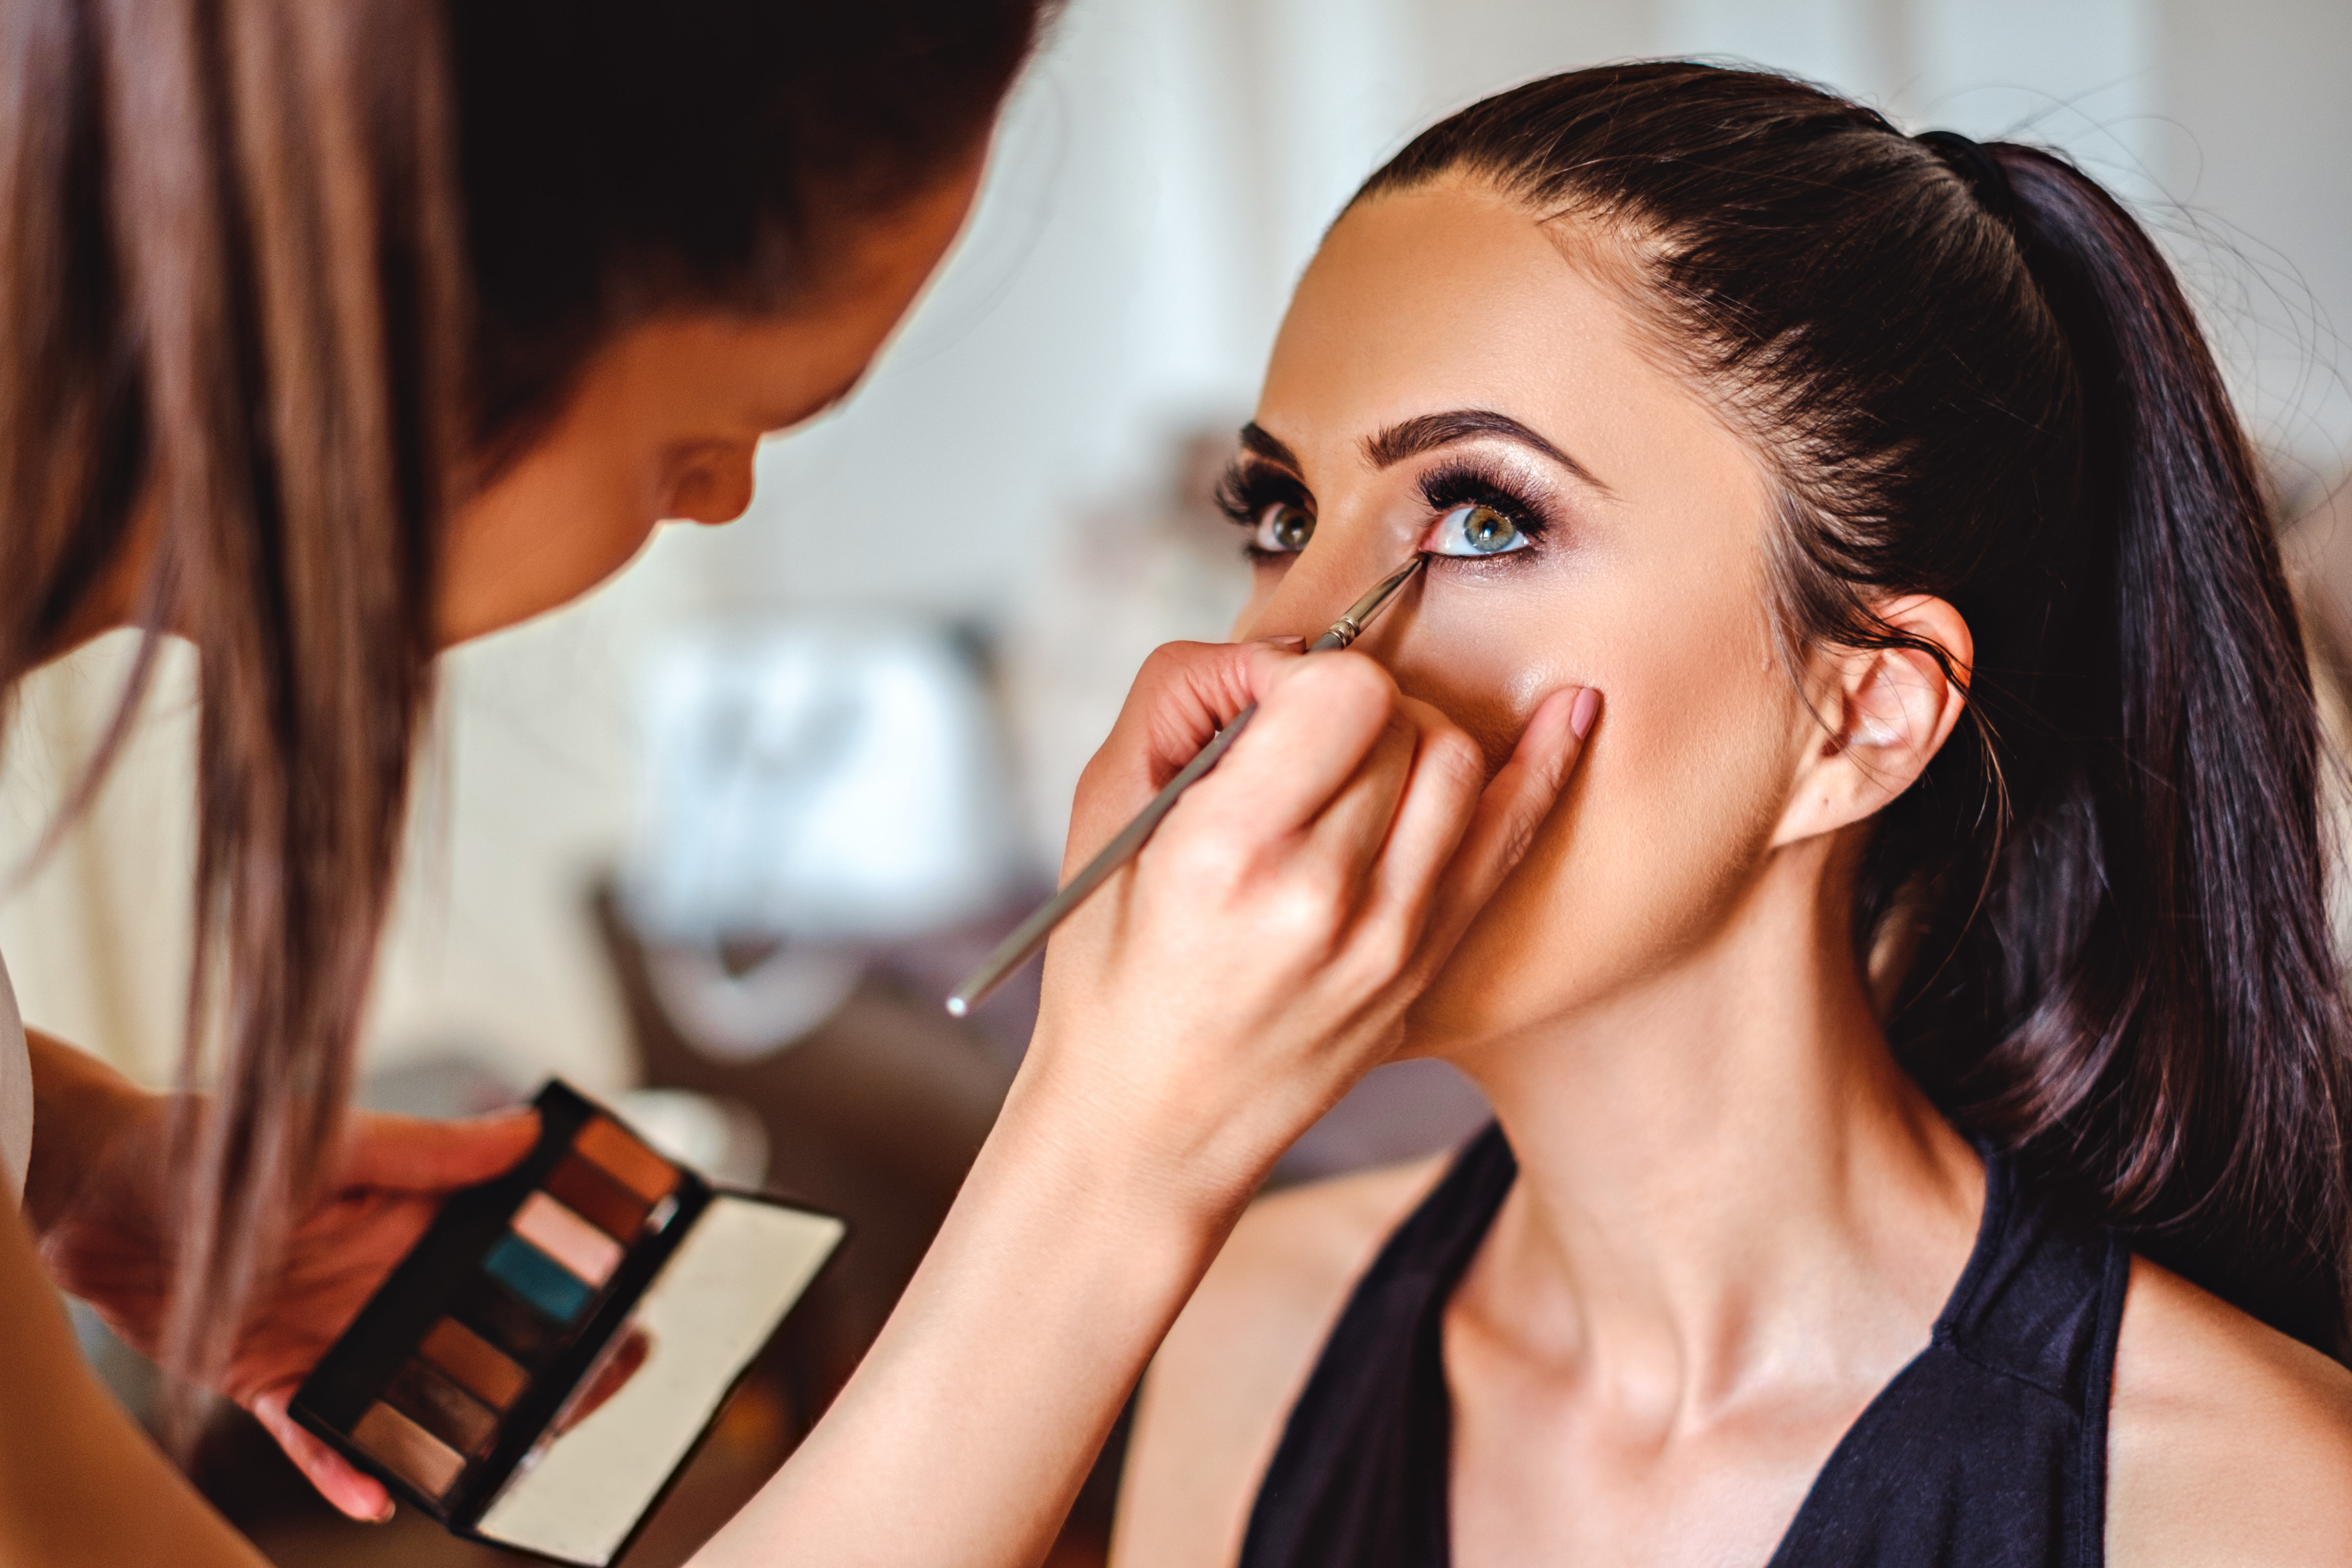 13 Drugstore Beauty Products Makeup Artists Swear By | HuffPost Life